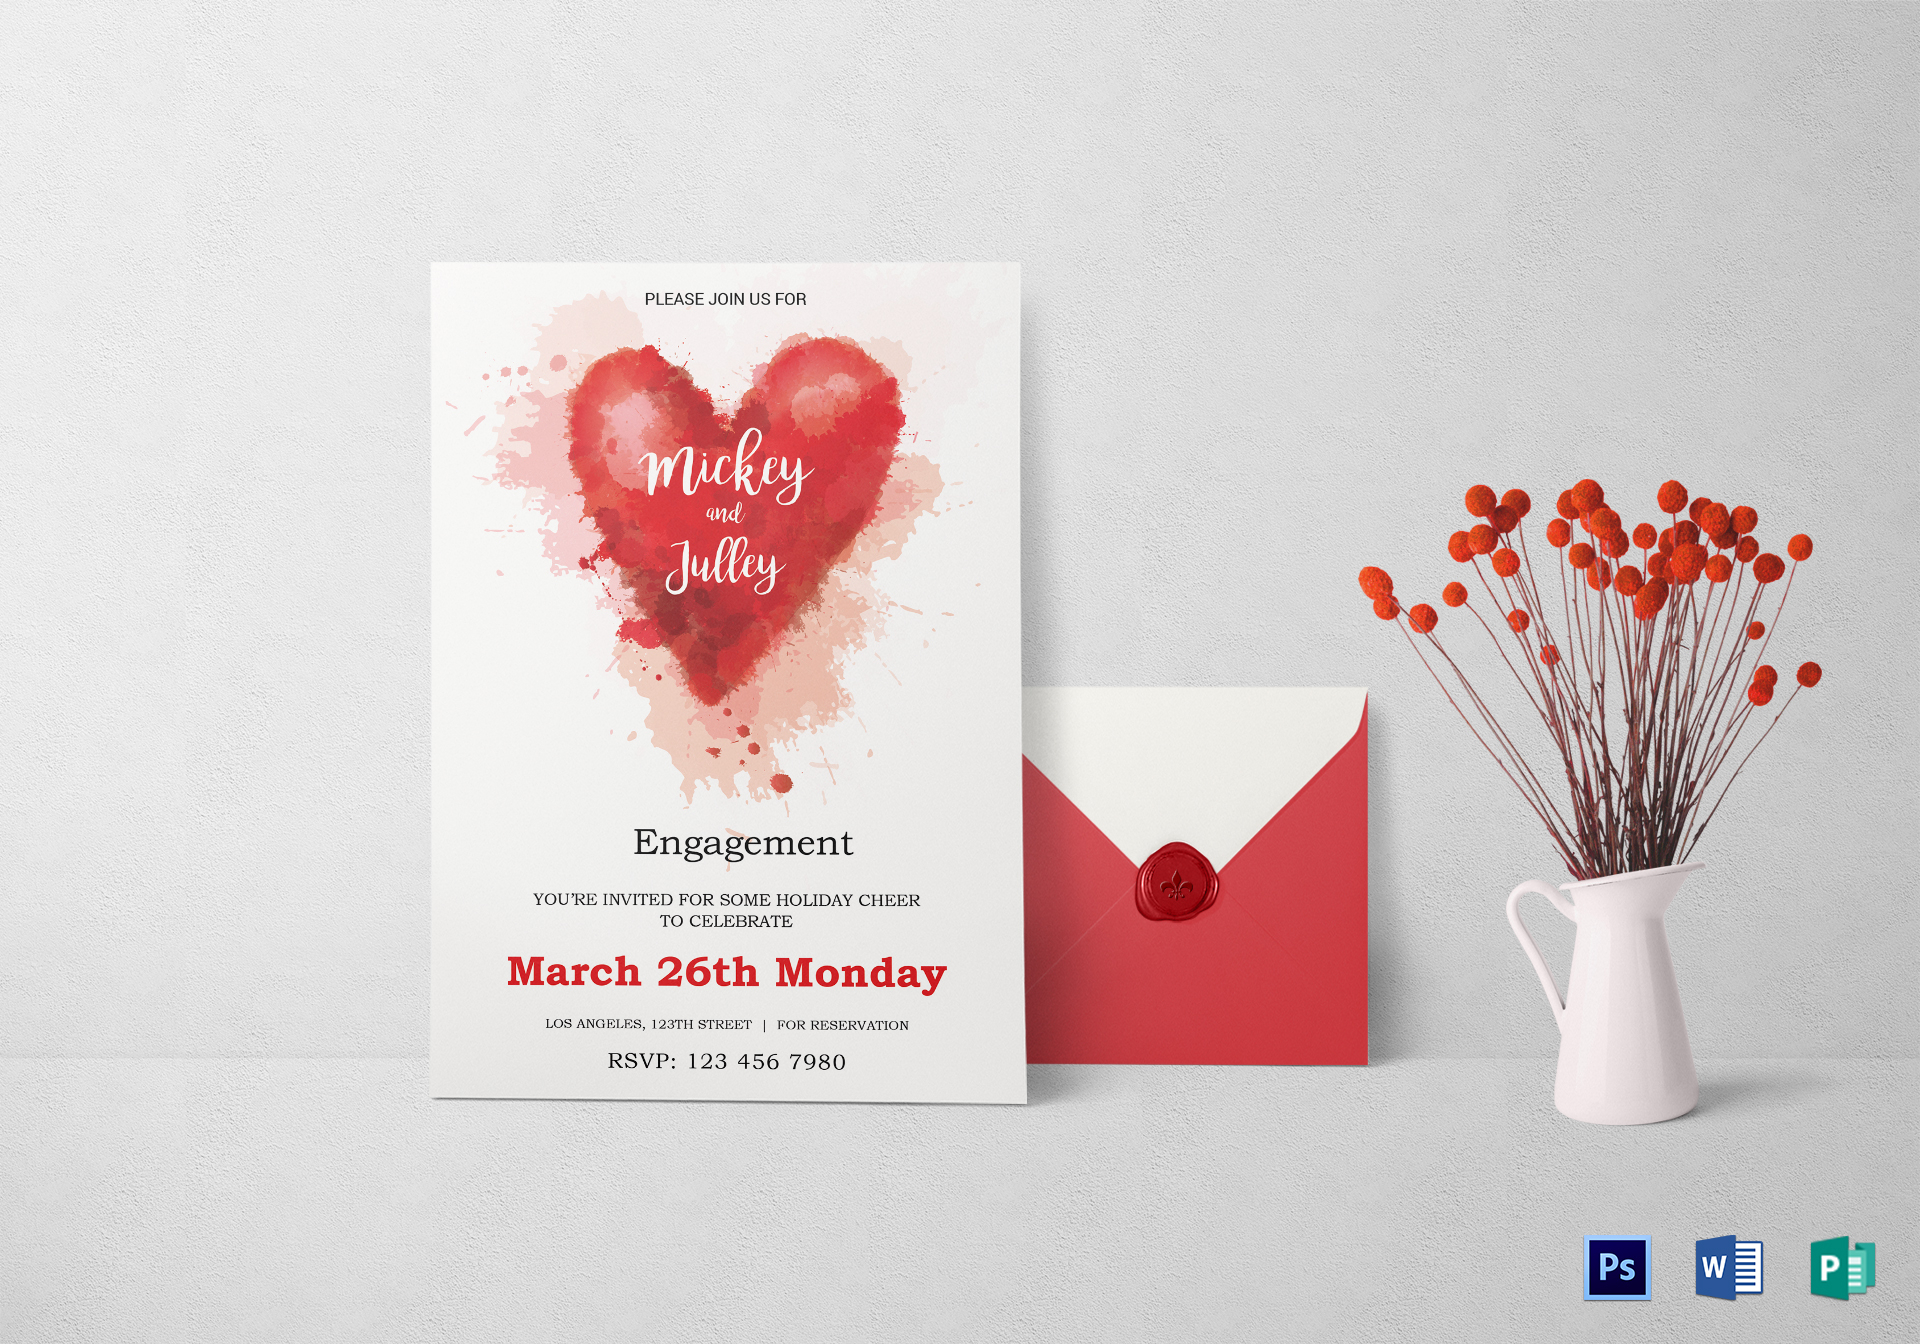 Colorful Engagement Invitation Card Design Template In Word Psd